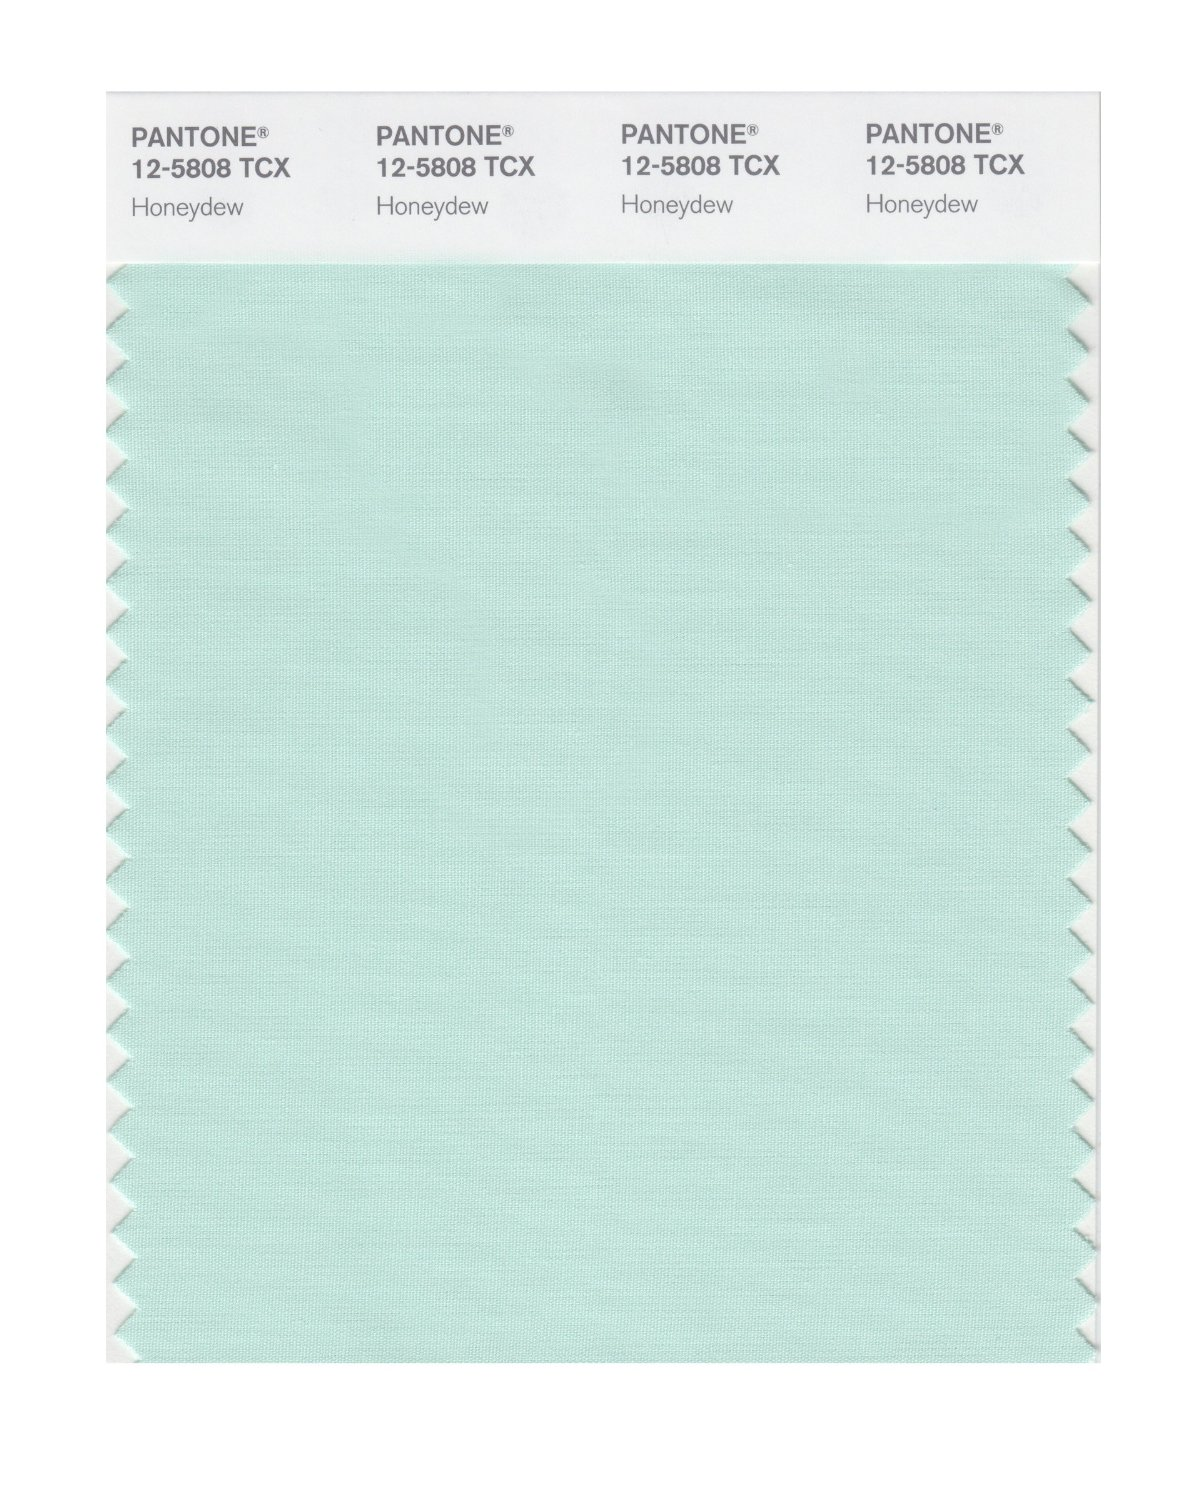 Pantone Smart Swatch 12-5808 Honeydew